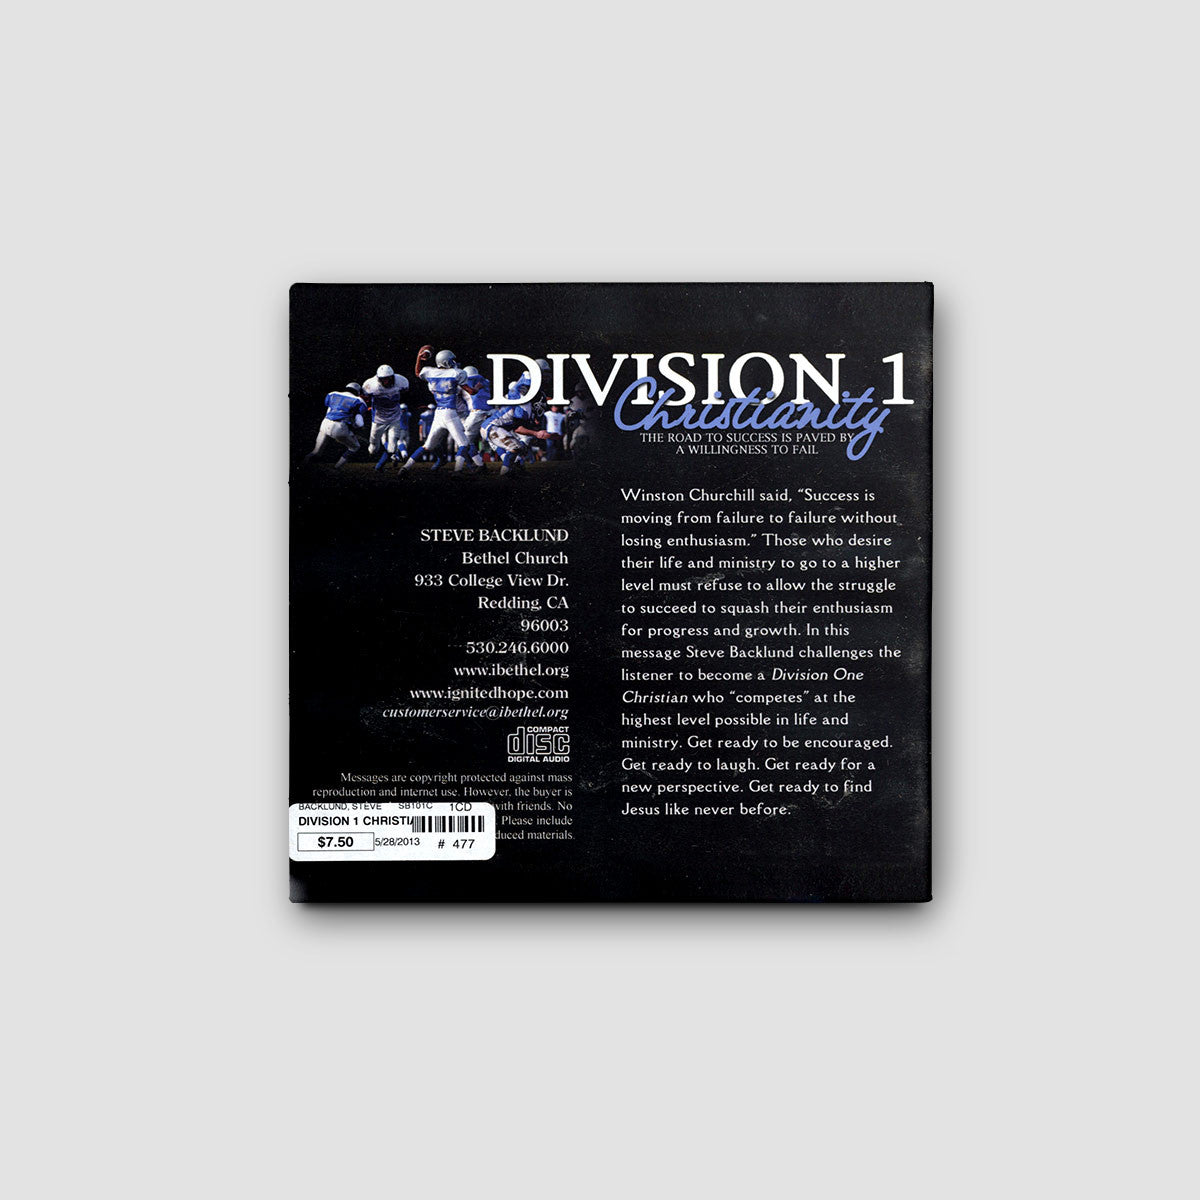 Division 1 Christianity